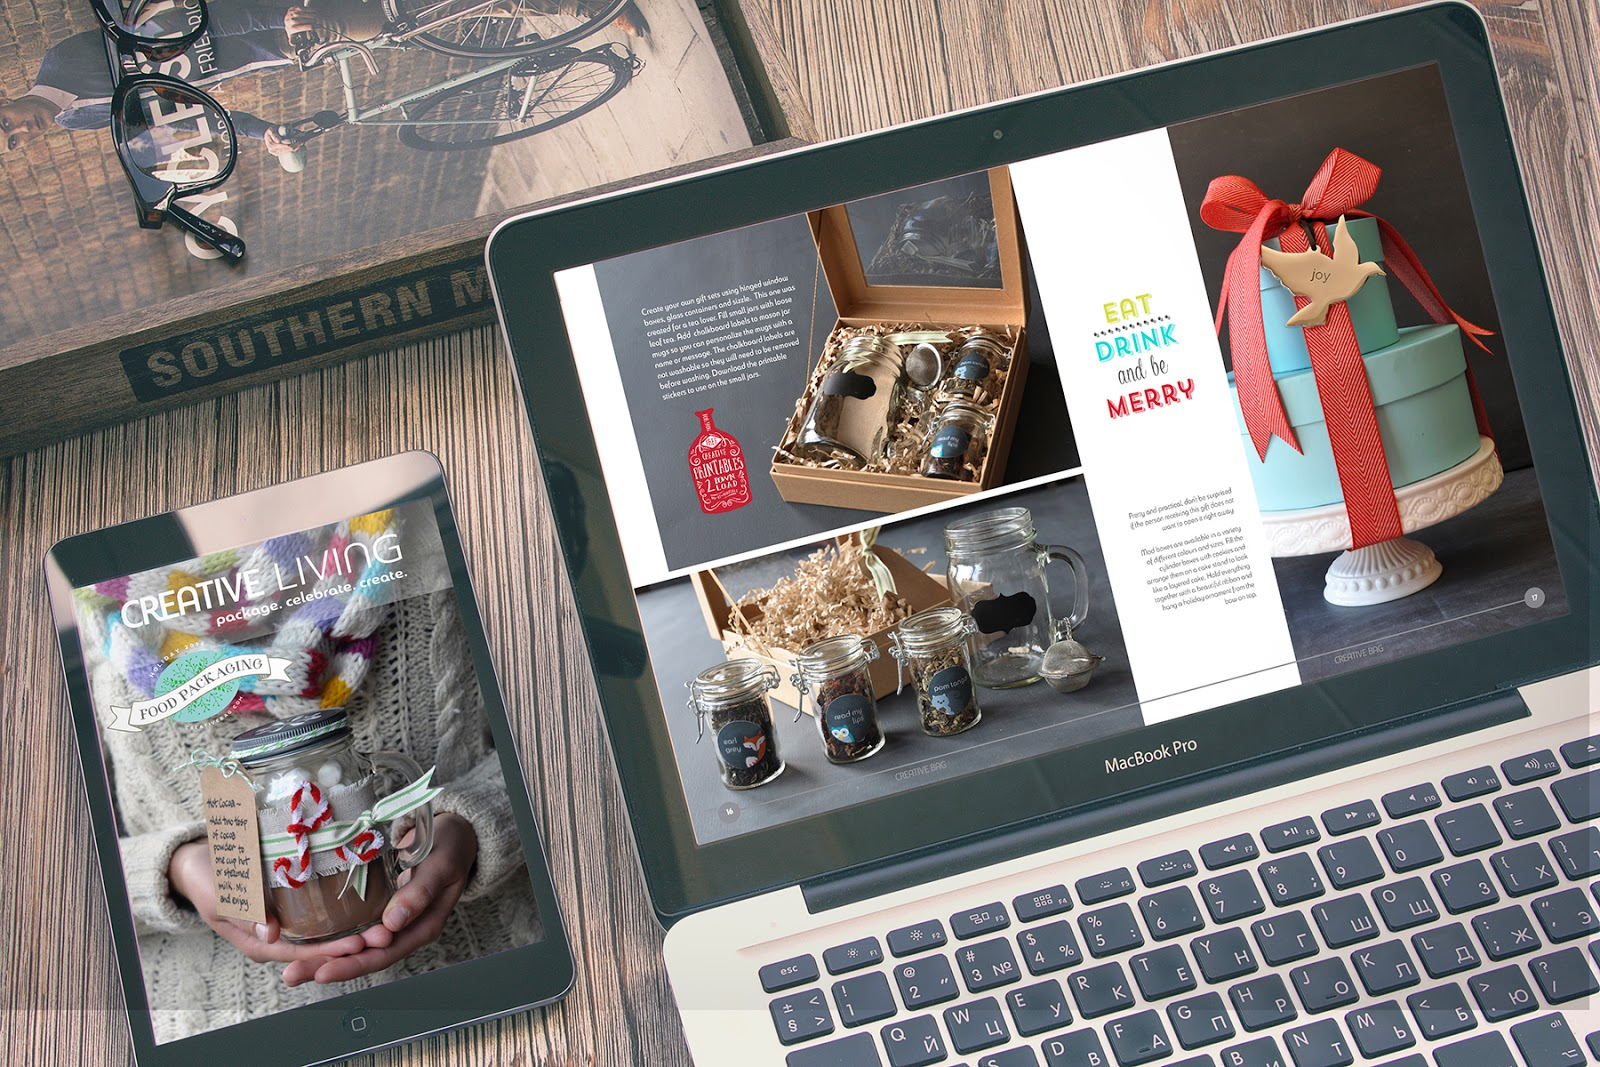 Creative Living online magazine - Lorrie Everitt's holiday diy projects using products from Creative Bag